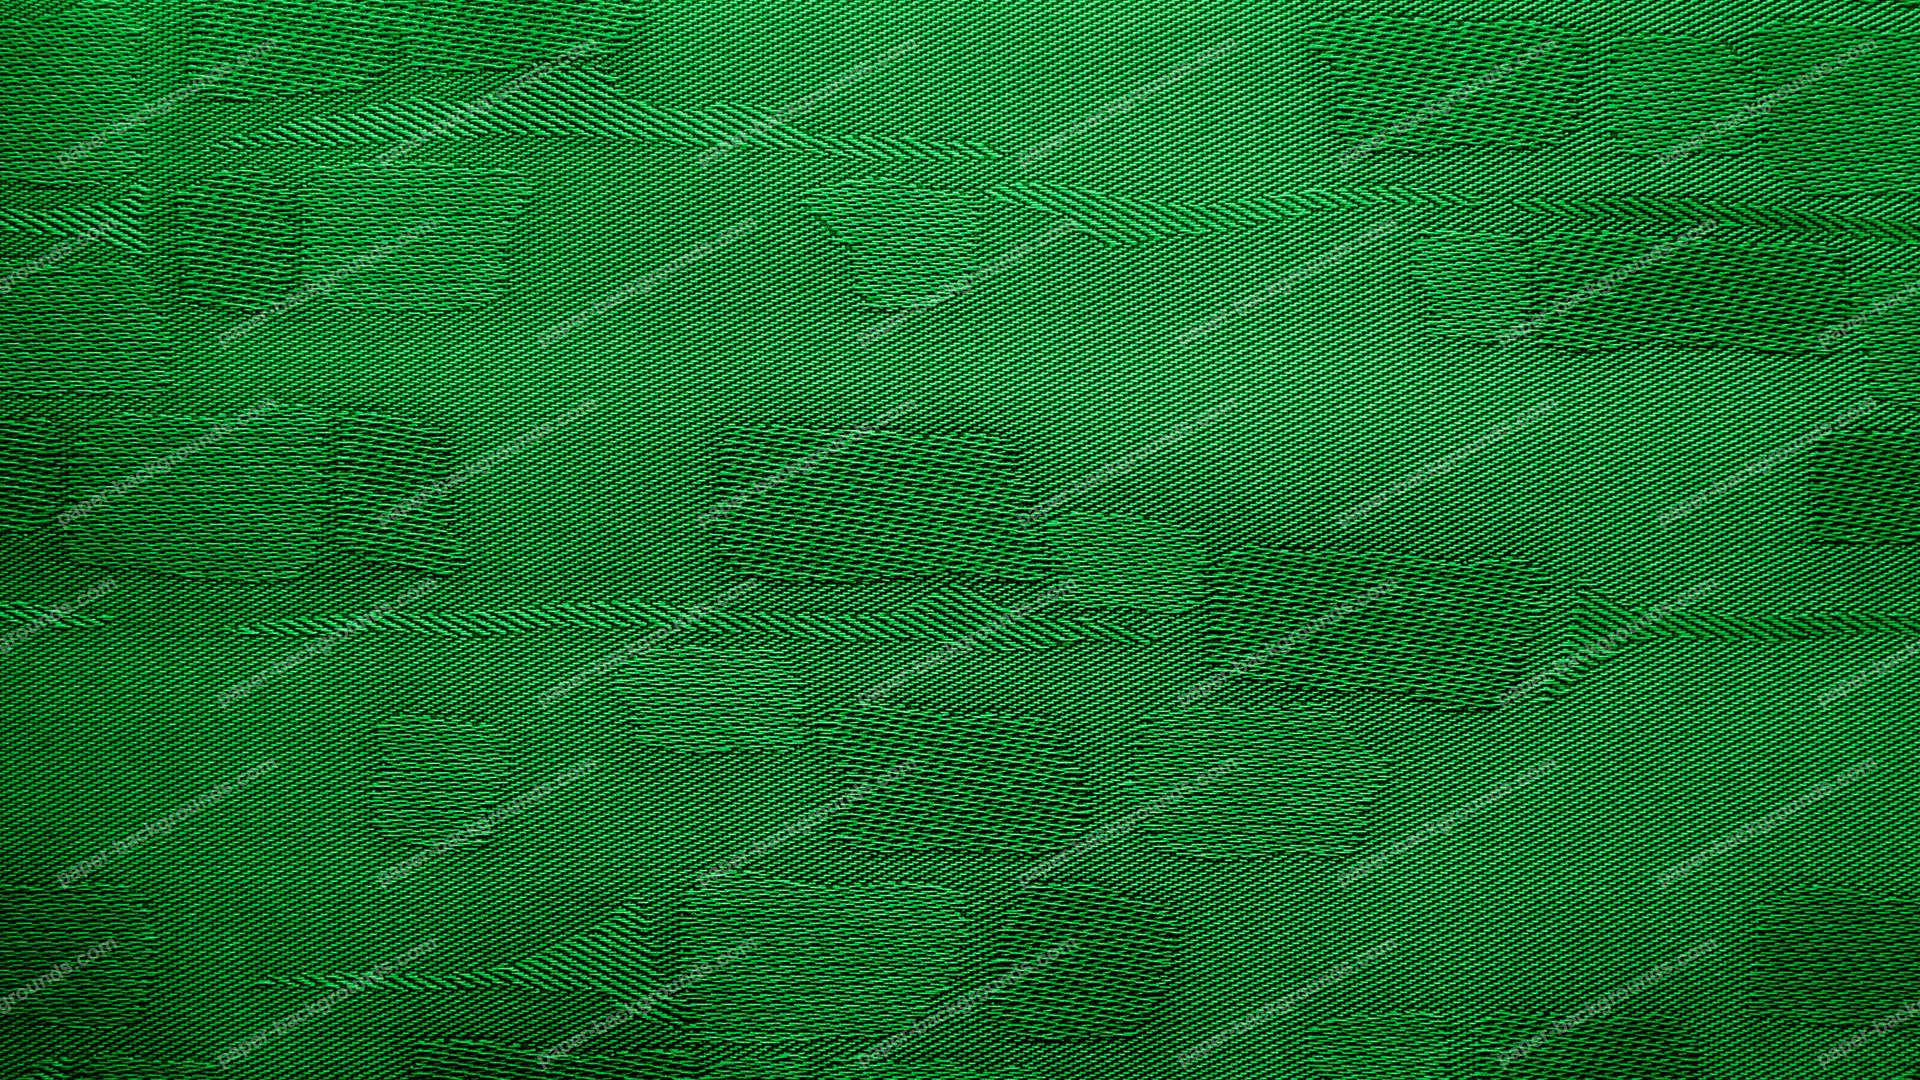 Green Fabric Background With Patches HD 1920 x 1080p